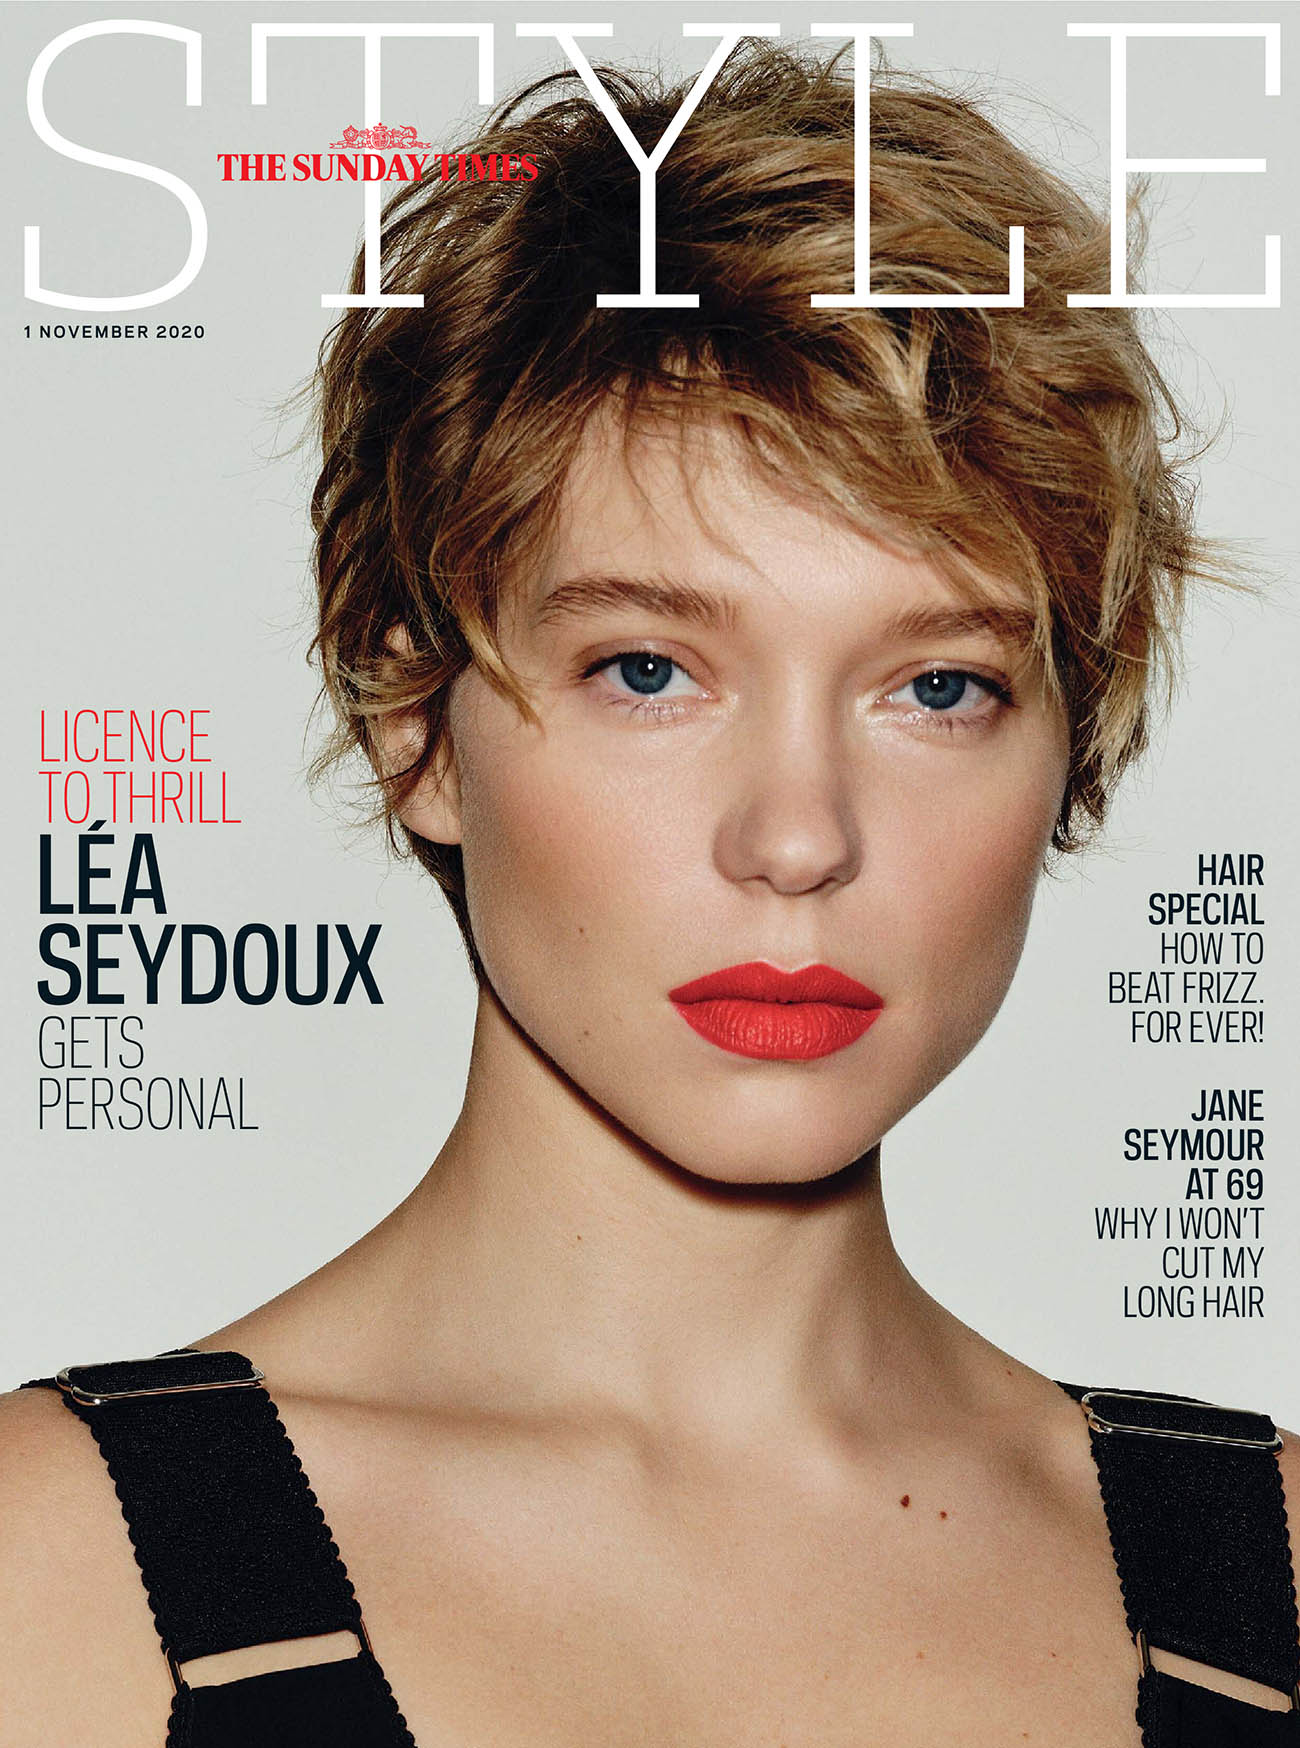 Léa Seydoux covers The Sunday Times Style November 1st, 2020 by David Ferrua